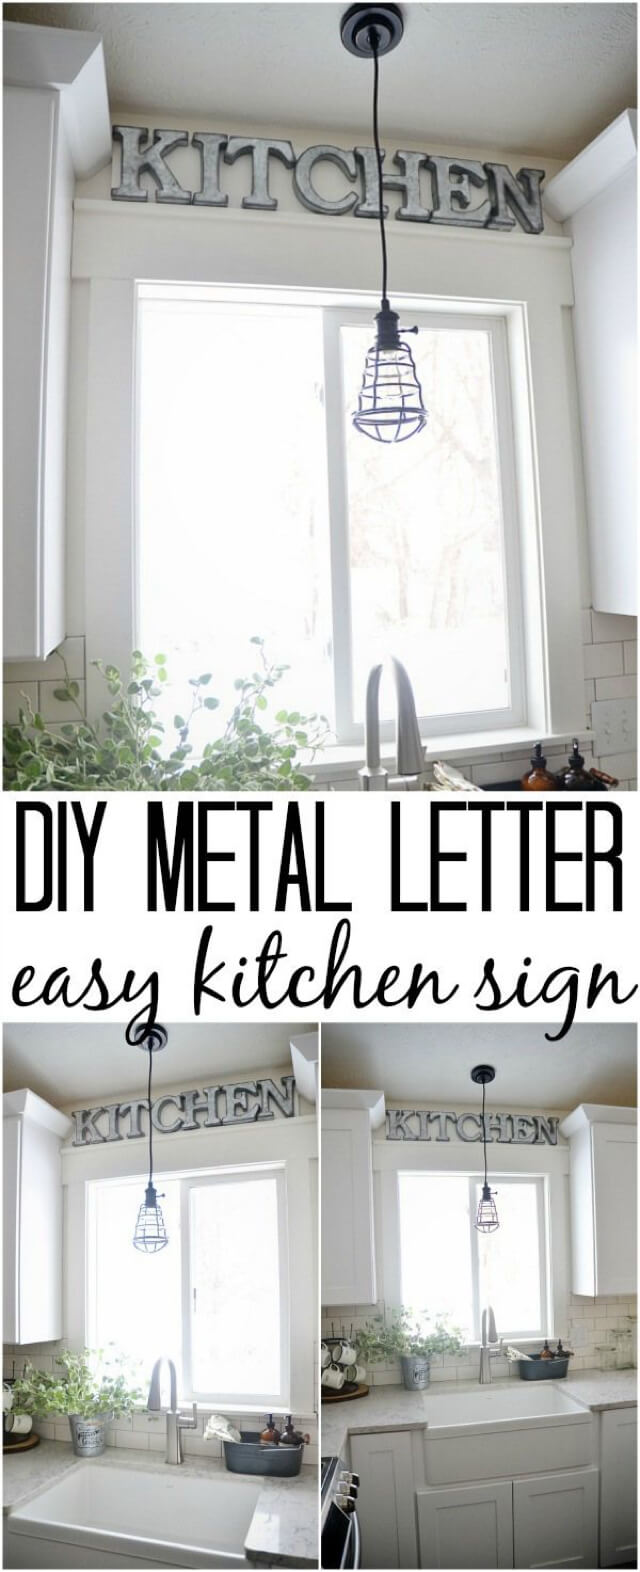 kitchen-wall-decor-ideas Kitchen signs!